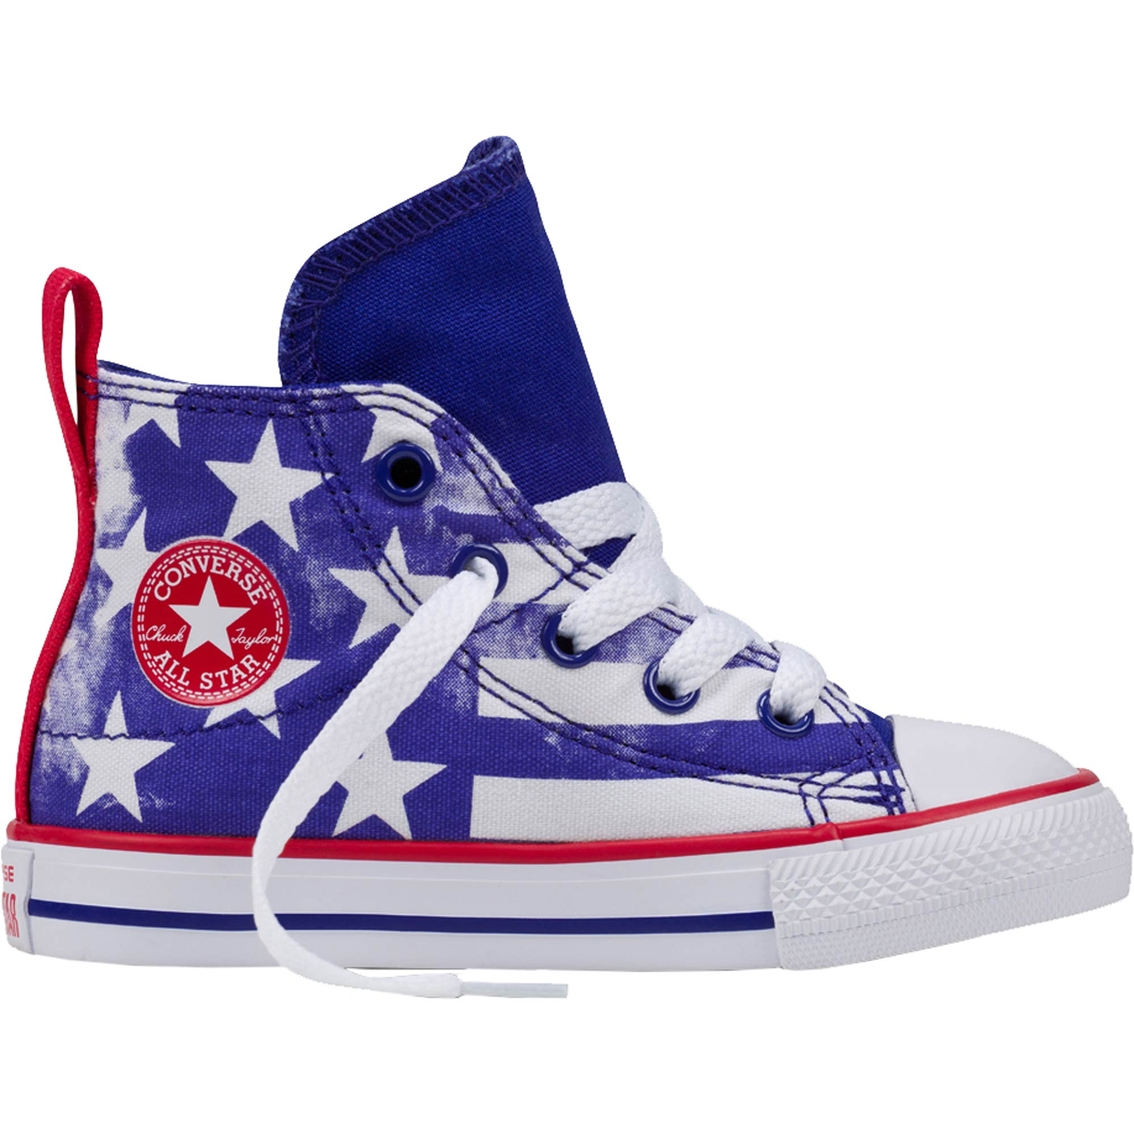 369802705856c6 Converse Toddler Boys Chuck Taylor All Star Simple Step Sneakers ...